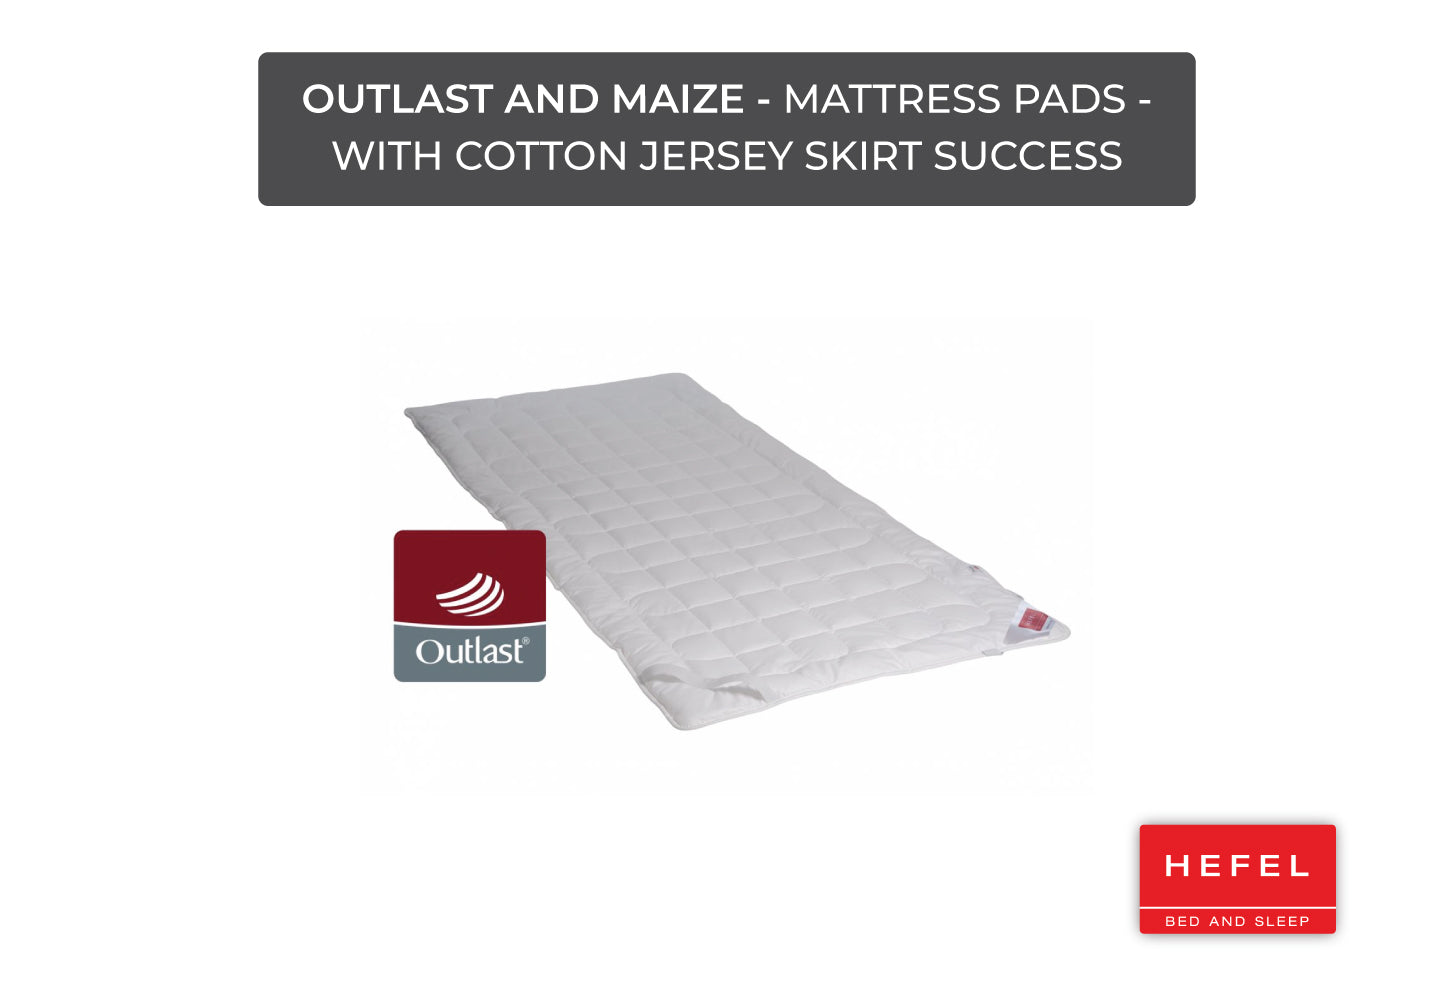 Outlast and Maize - Mattress Pads - with cotton jersey skirt